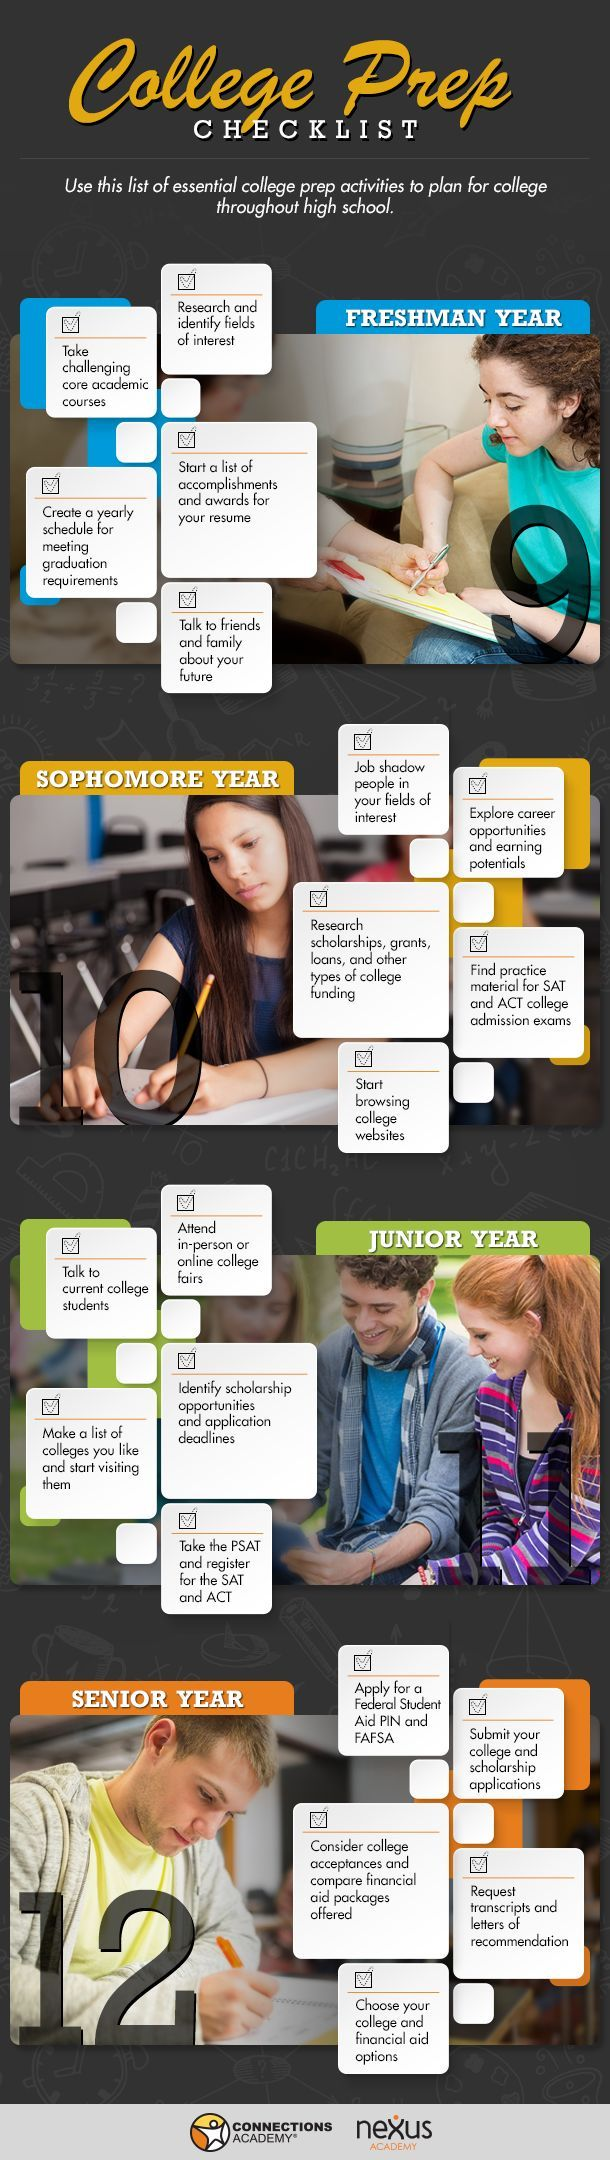 14 best College Applications images on Pinterest | College tips ...